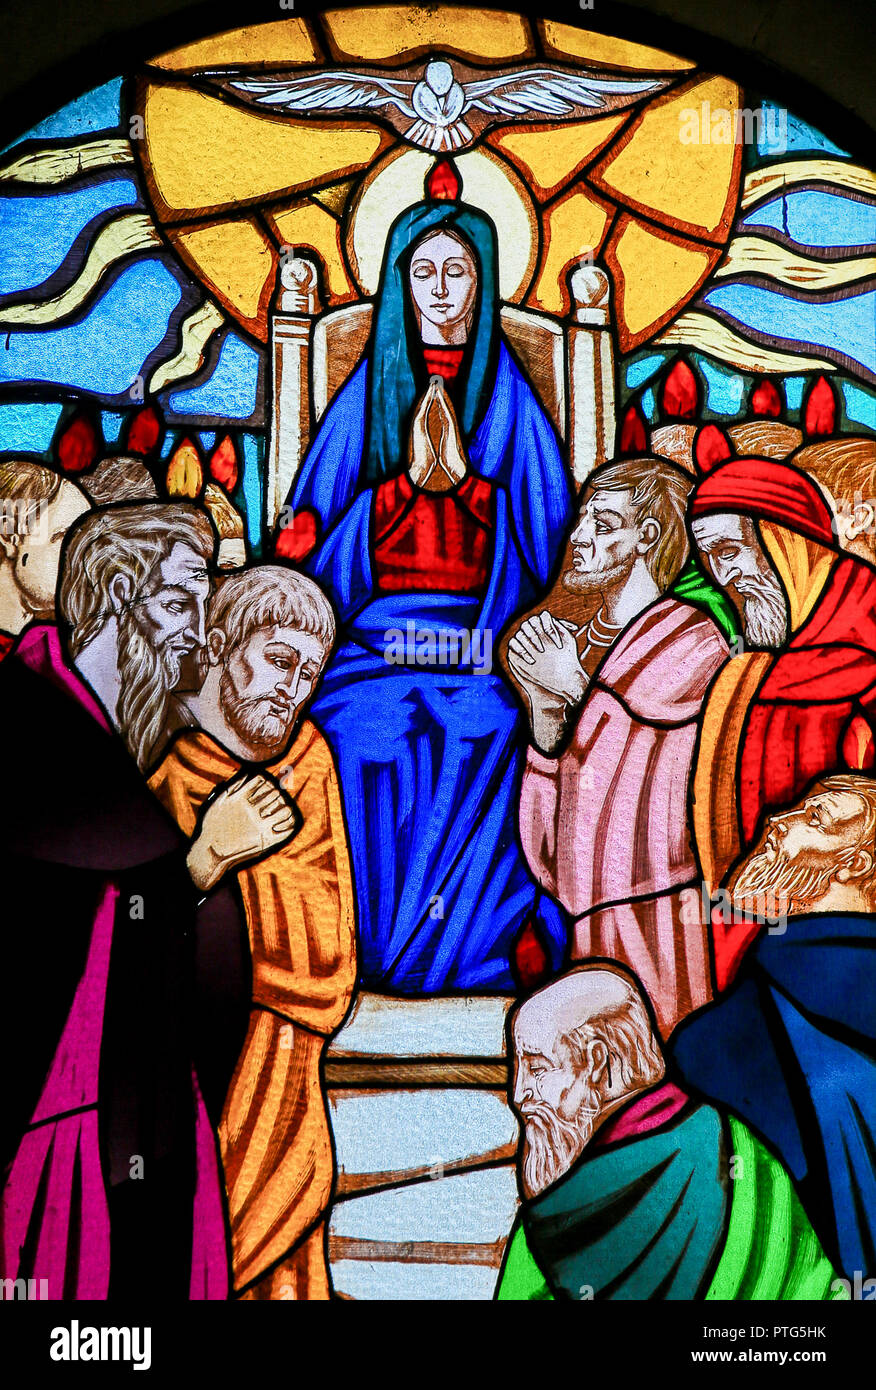 Stained glass window depicting Mother Mary and the Disciples of Christ at Pentecost in the Church of Ostuni, Apulia, Italy. - Stock Image